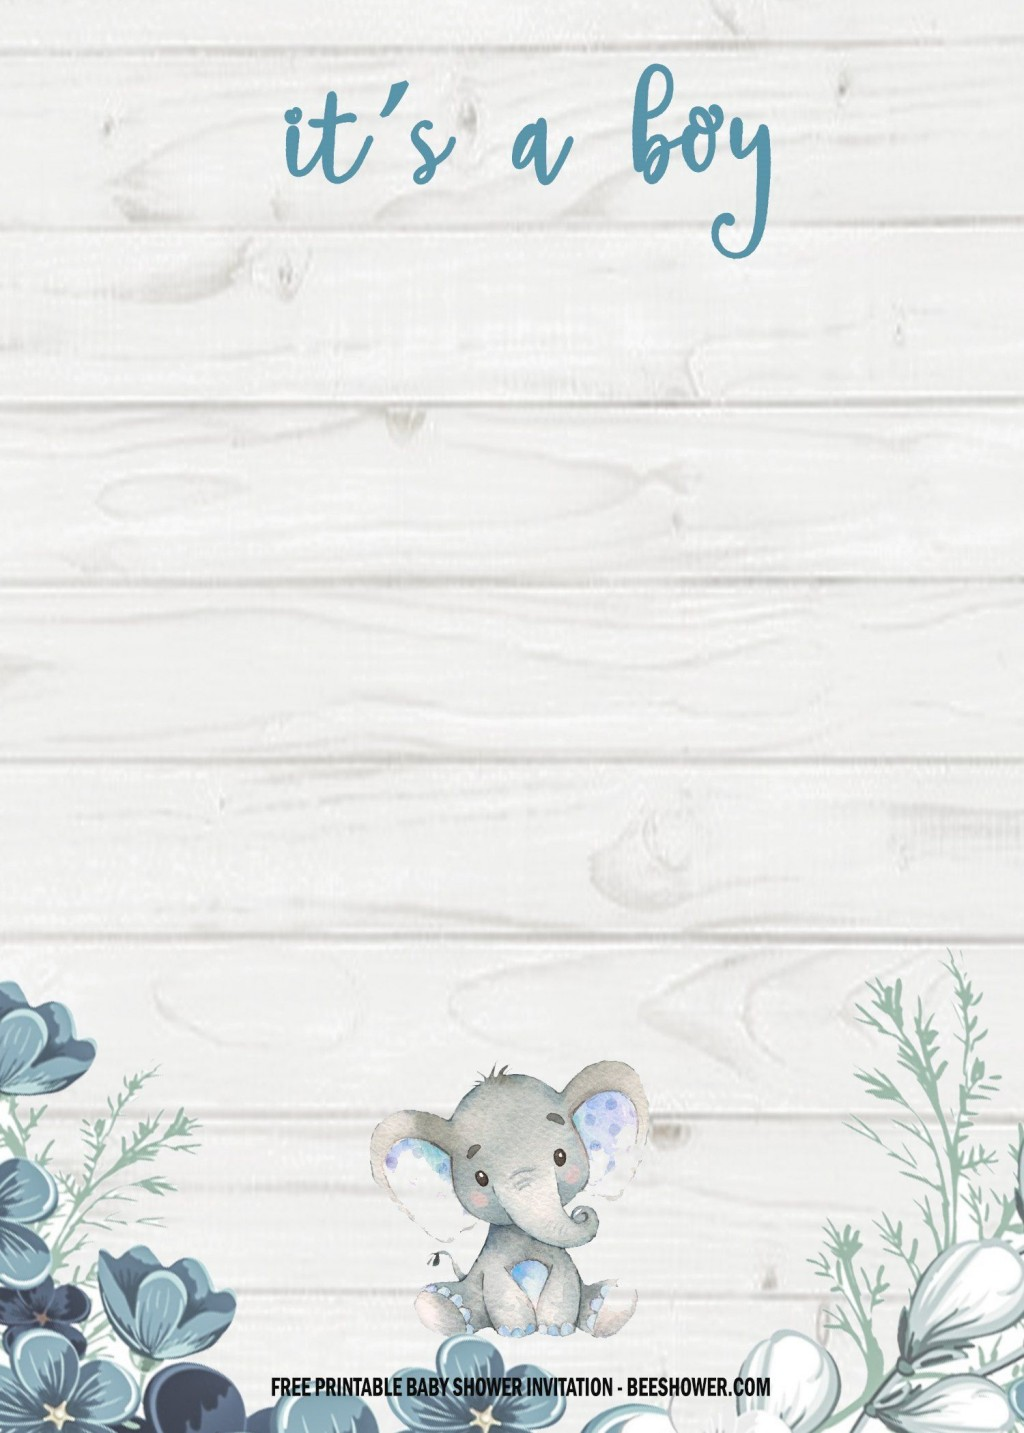 002 Stupendou Free Baby Shower Invitation Printable Boy Image  For Twin And GirlLarge